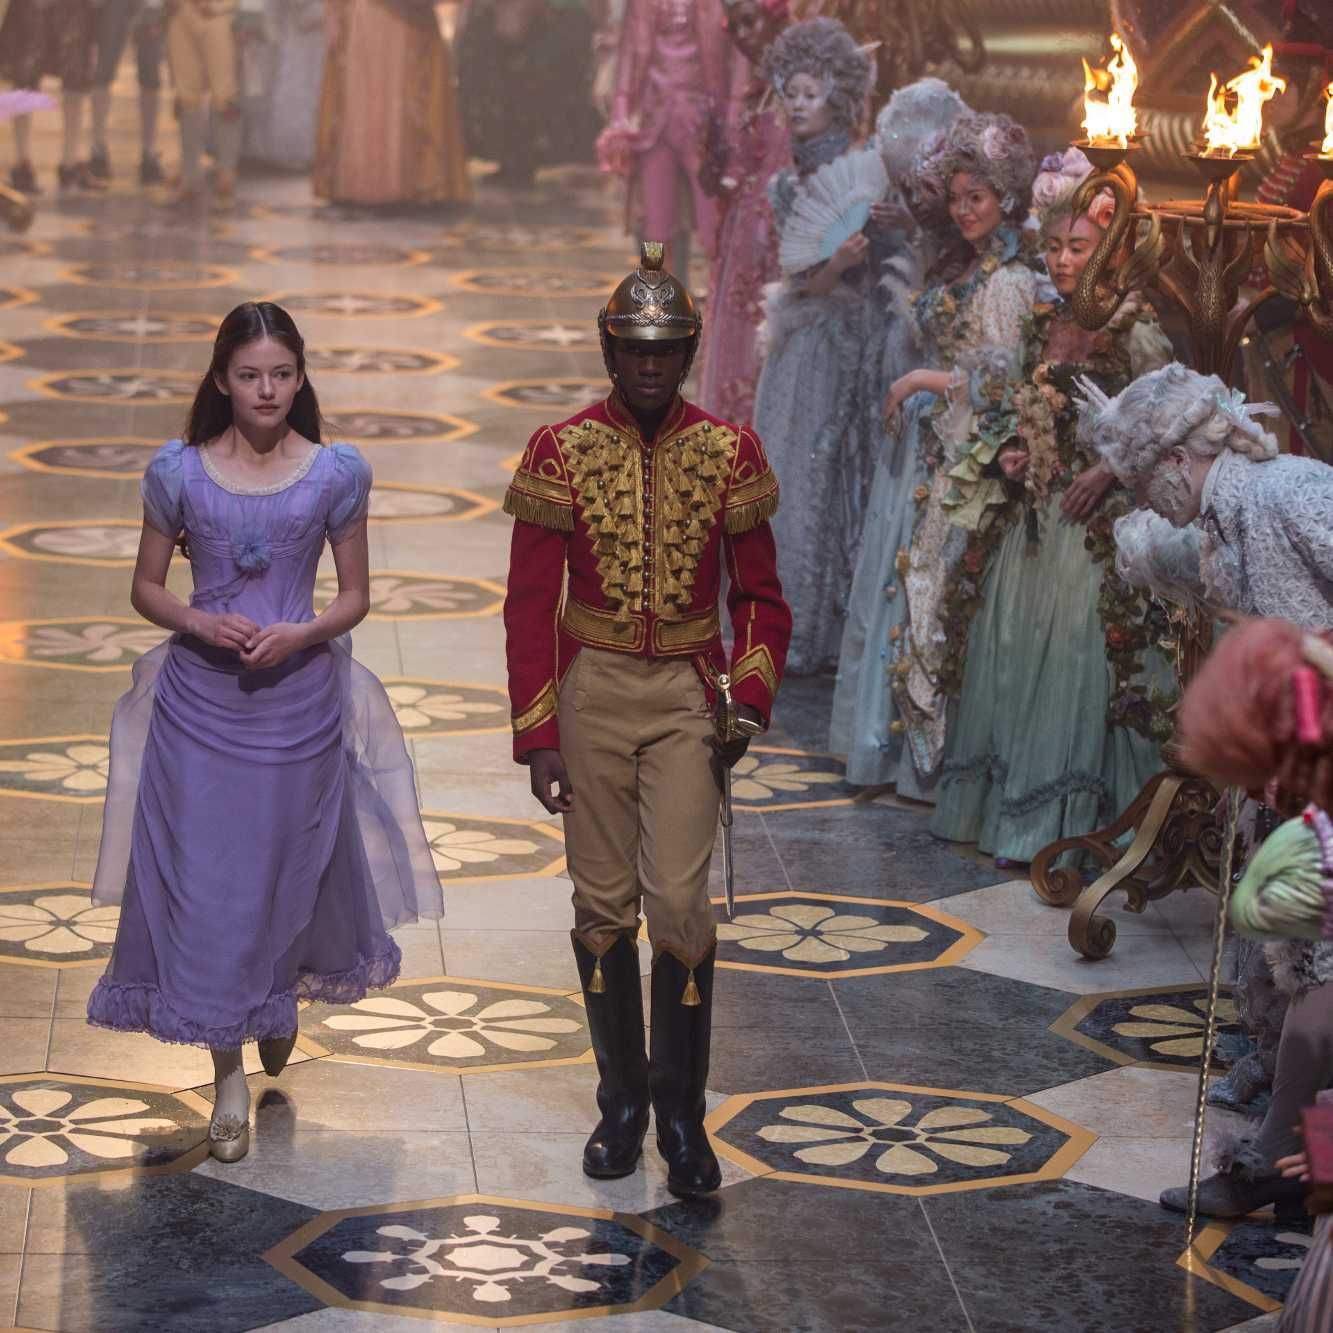 Teaser trailer of The Nutcracker and the Four Realms out: Get ready to be spellbound